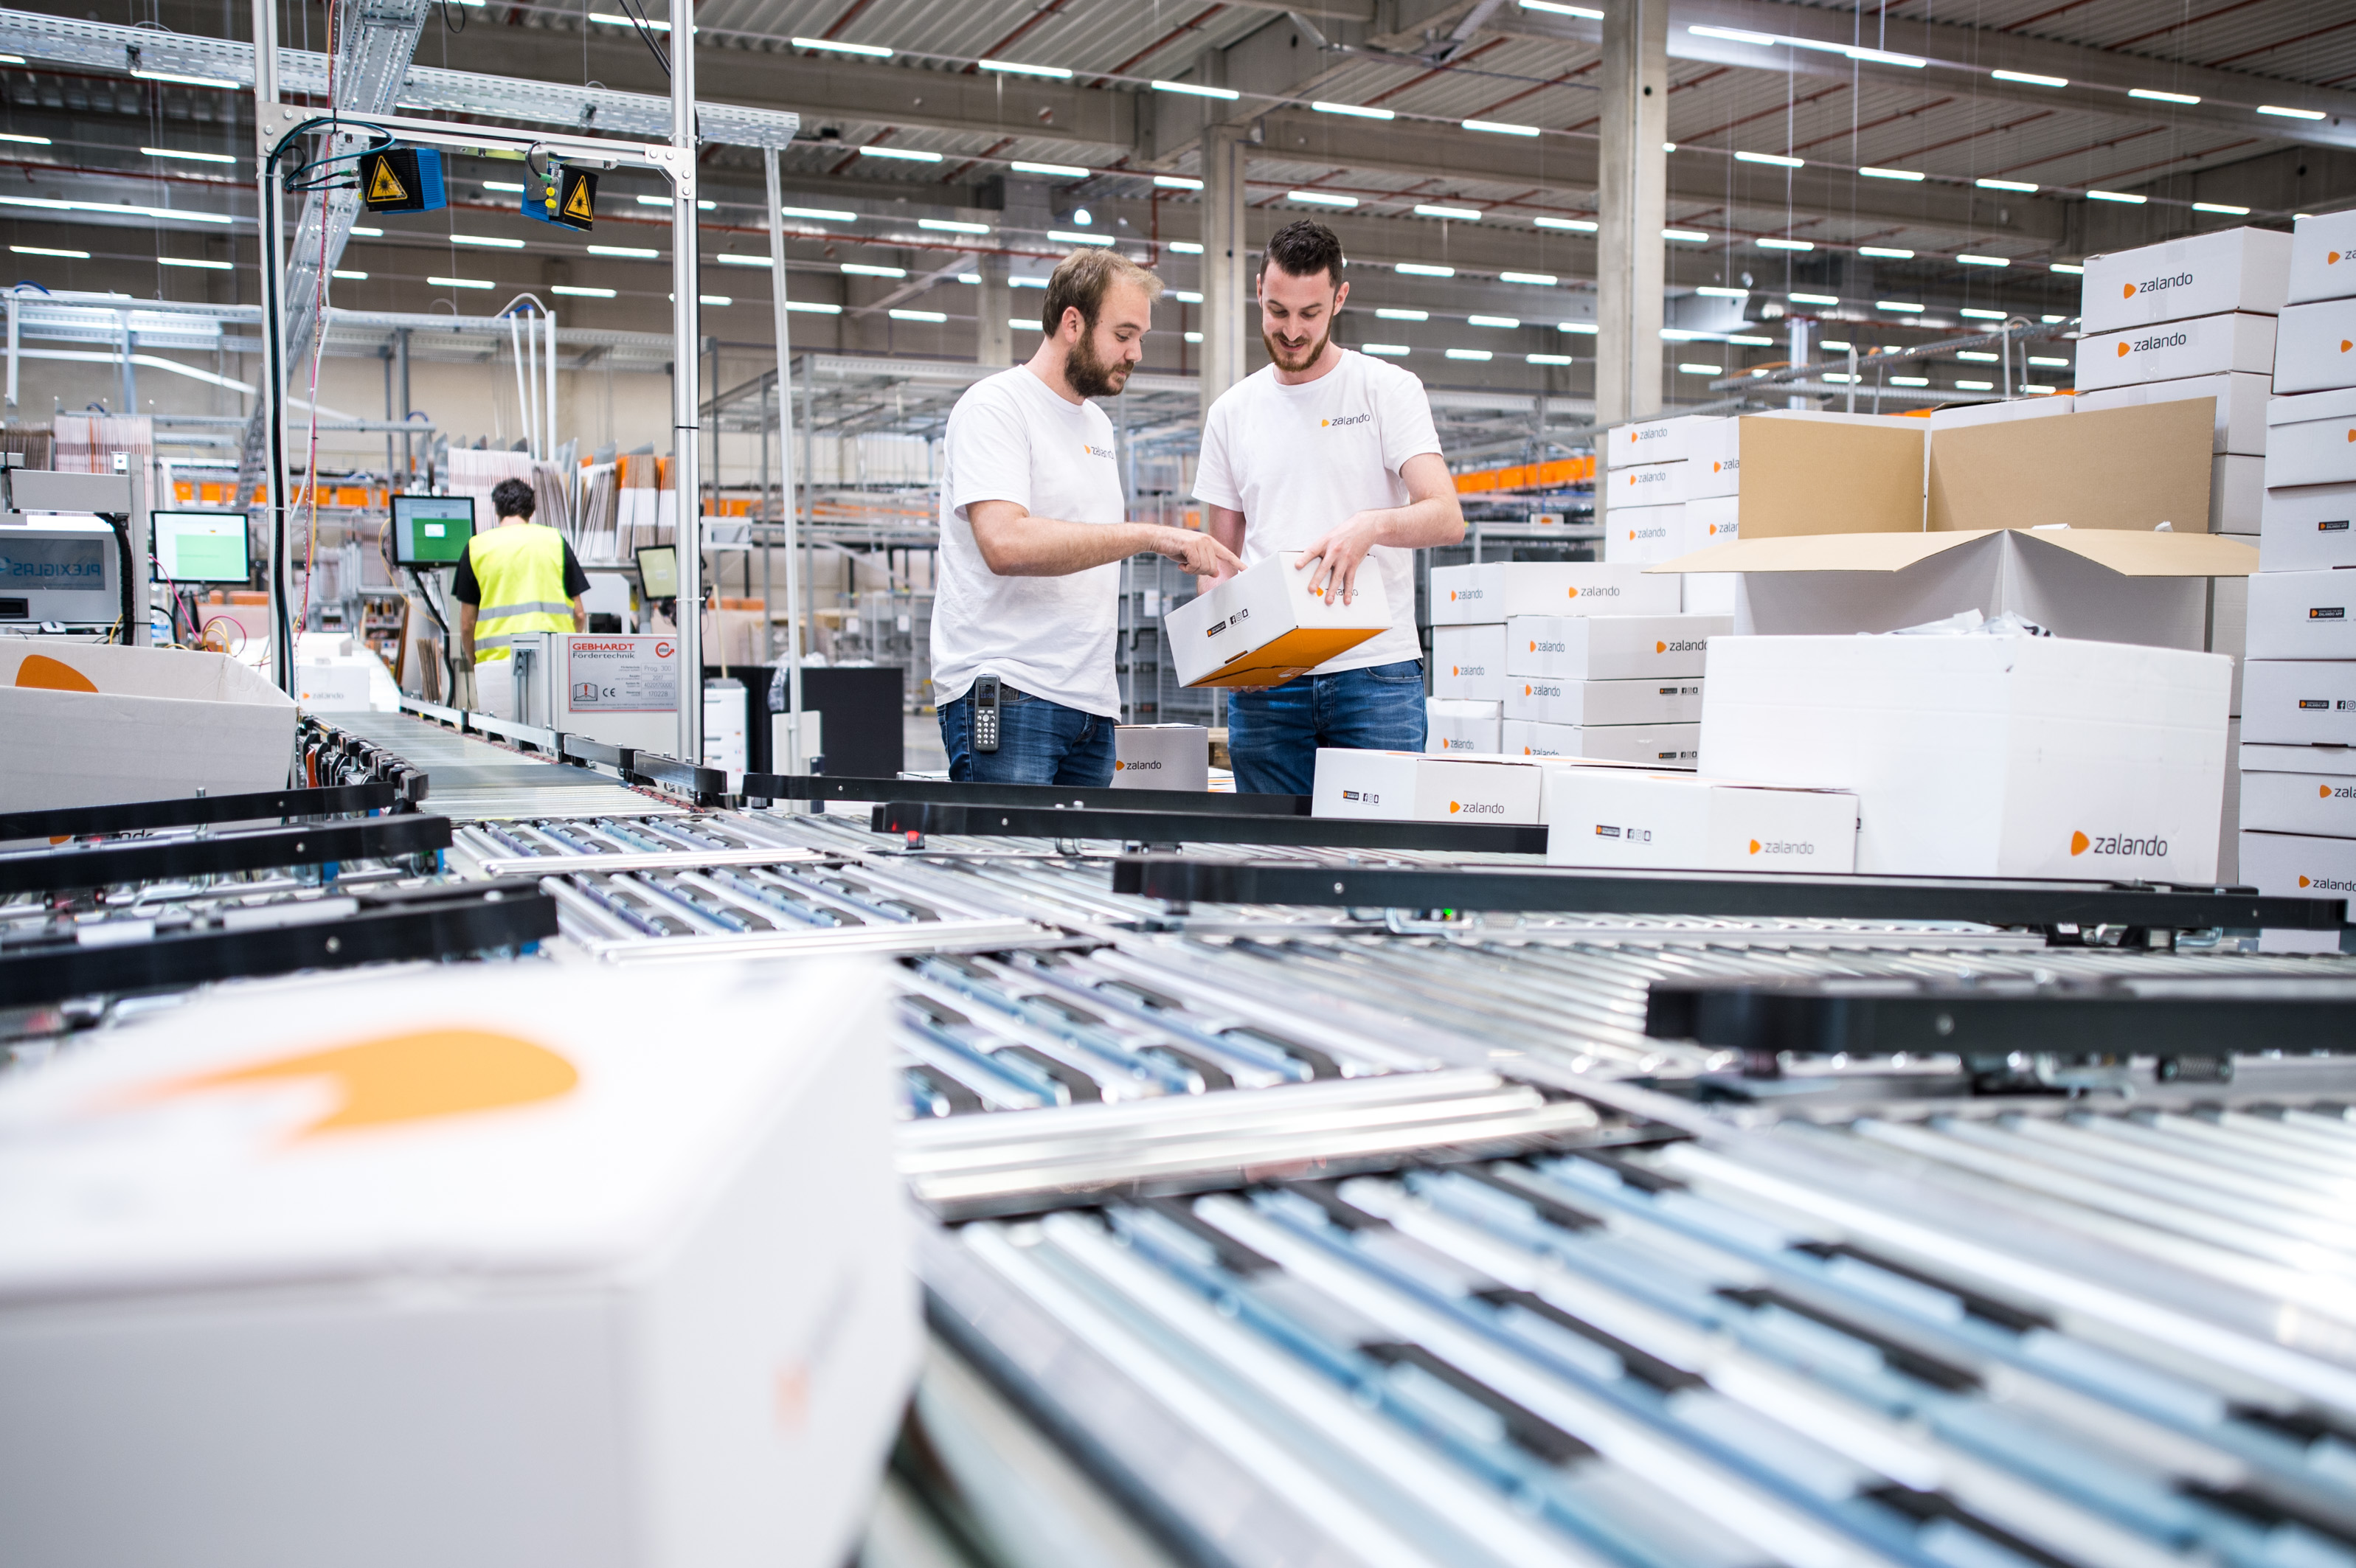 Zalando's fulfillment center in Lahr continues to grow